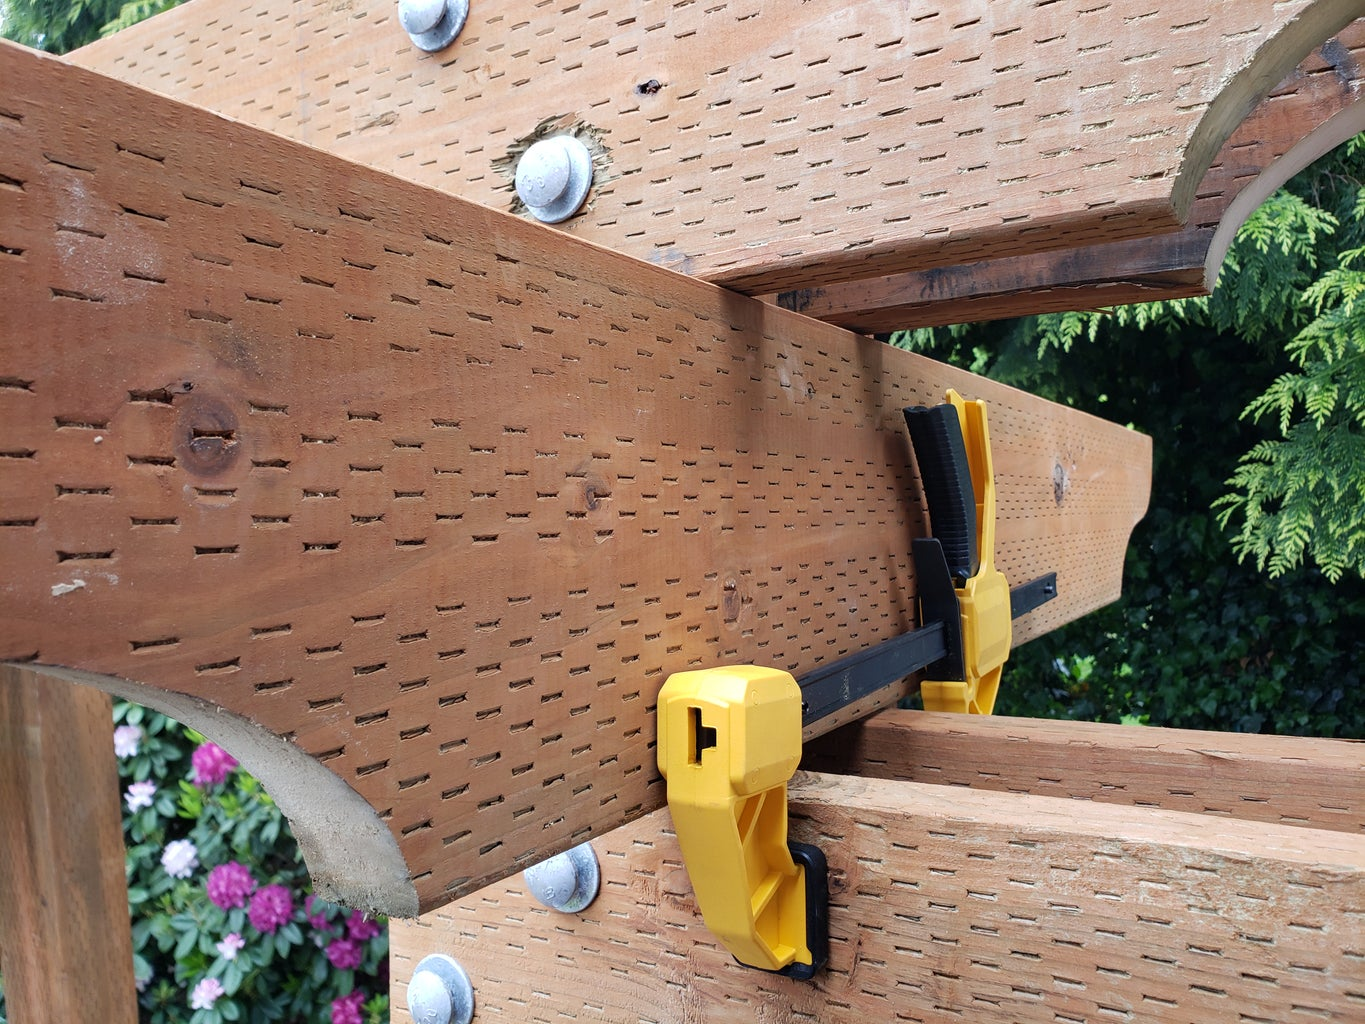 Arch Arbor Side Cross Boards Part 2